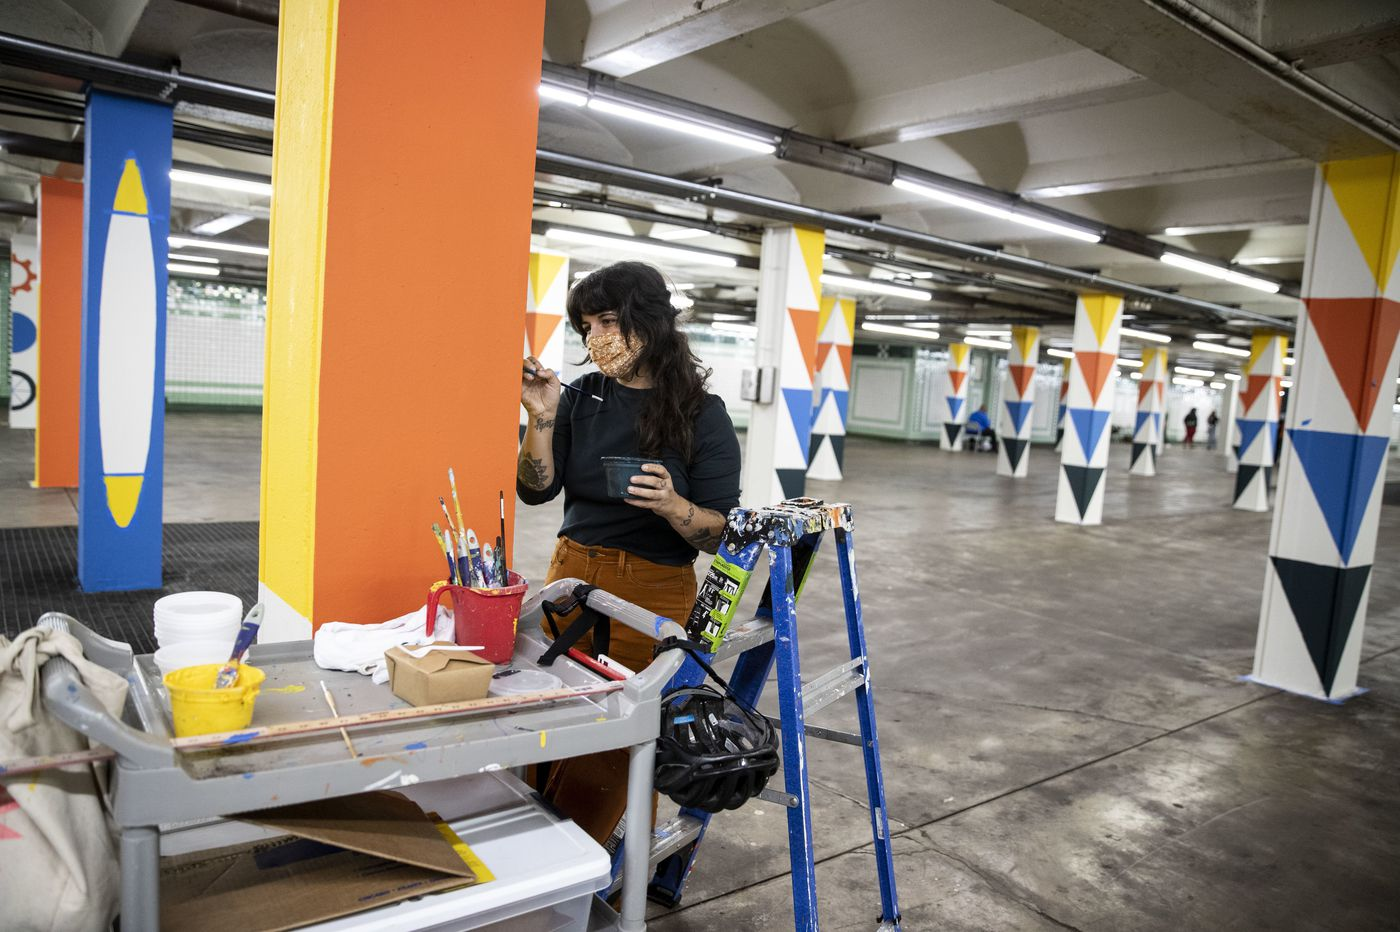 Mural Arts program turns 200 columns in SEPTA concourse into socially distant canvases